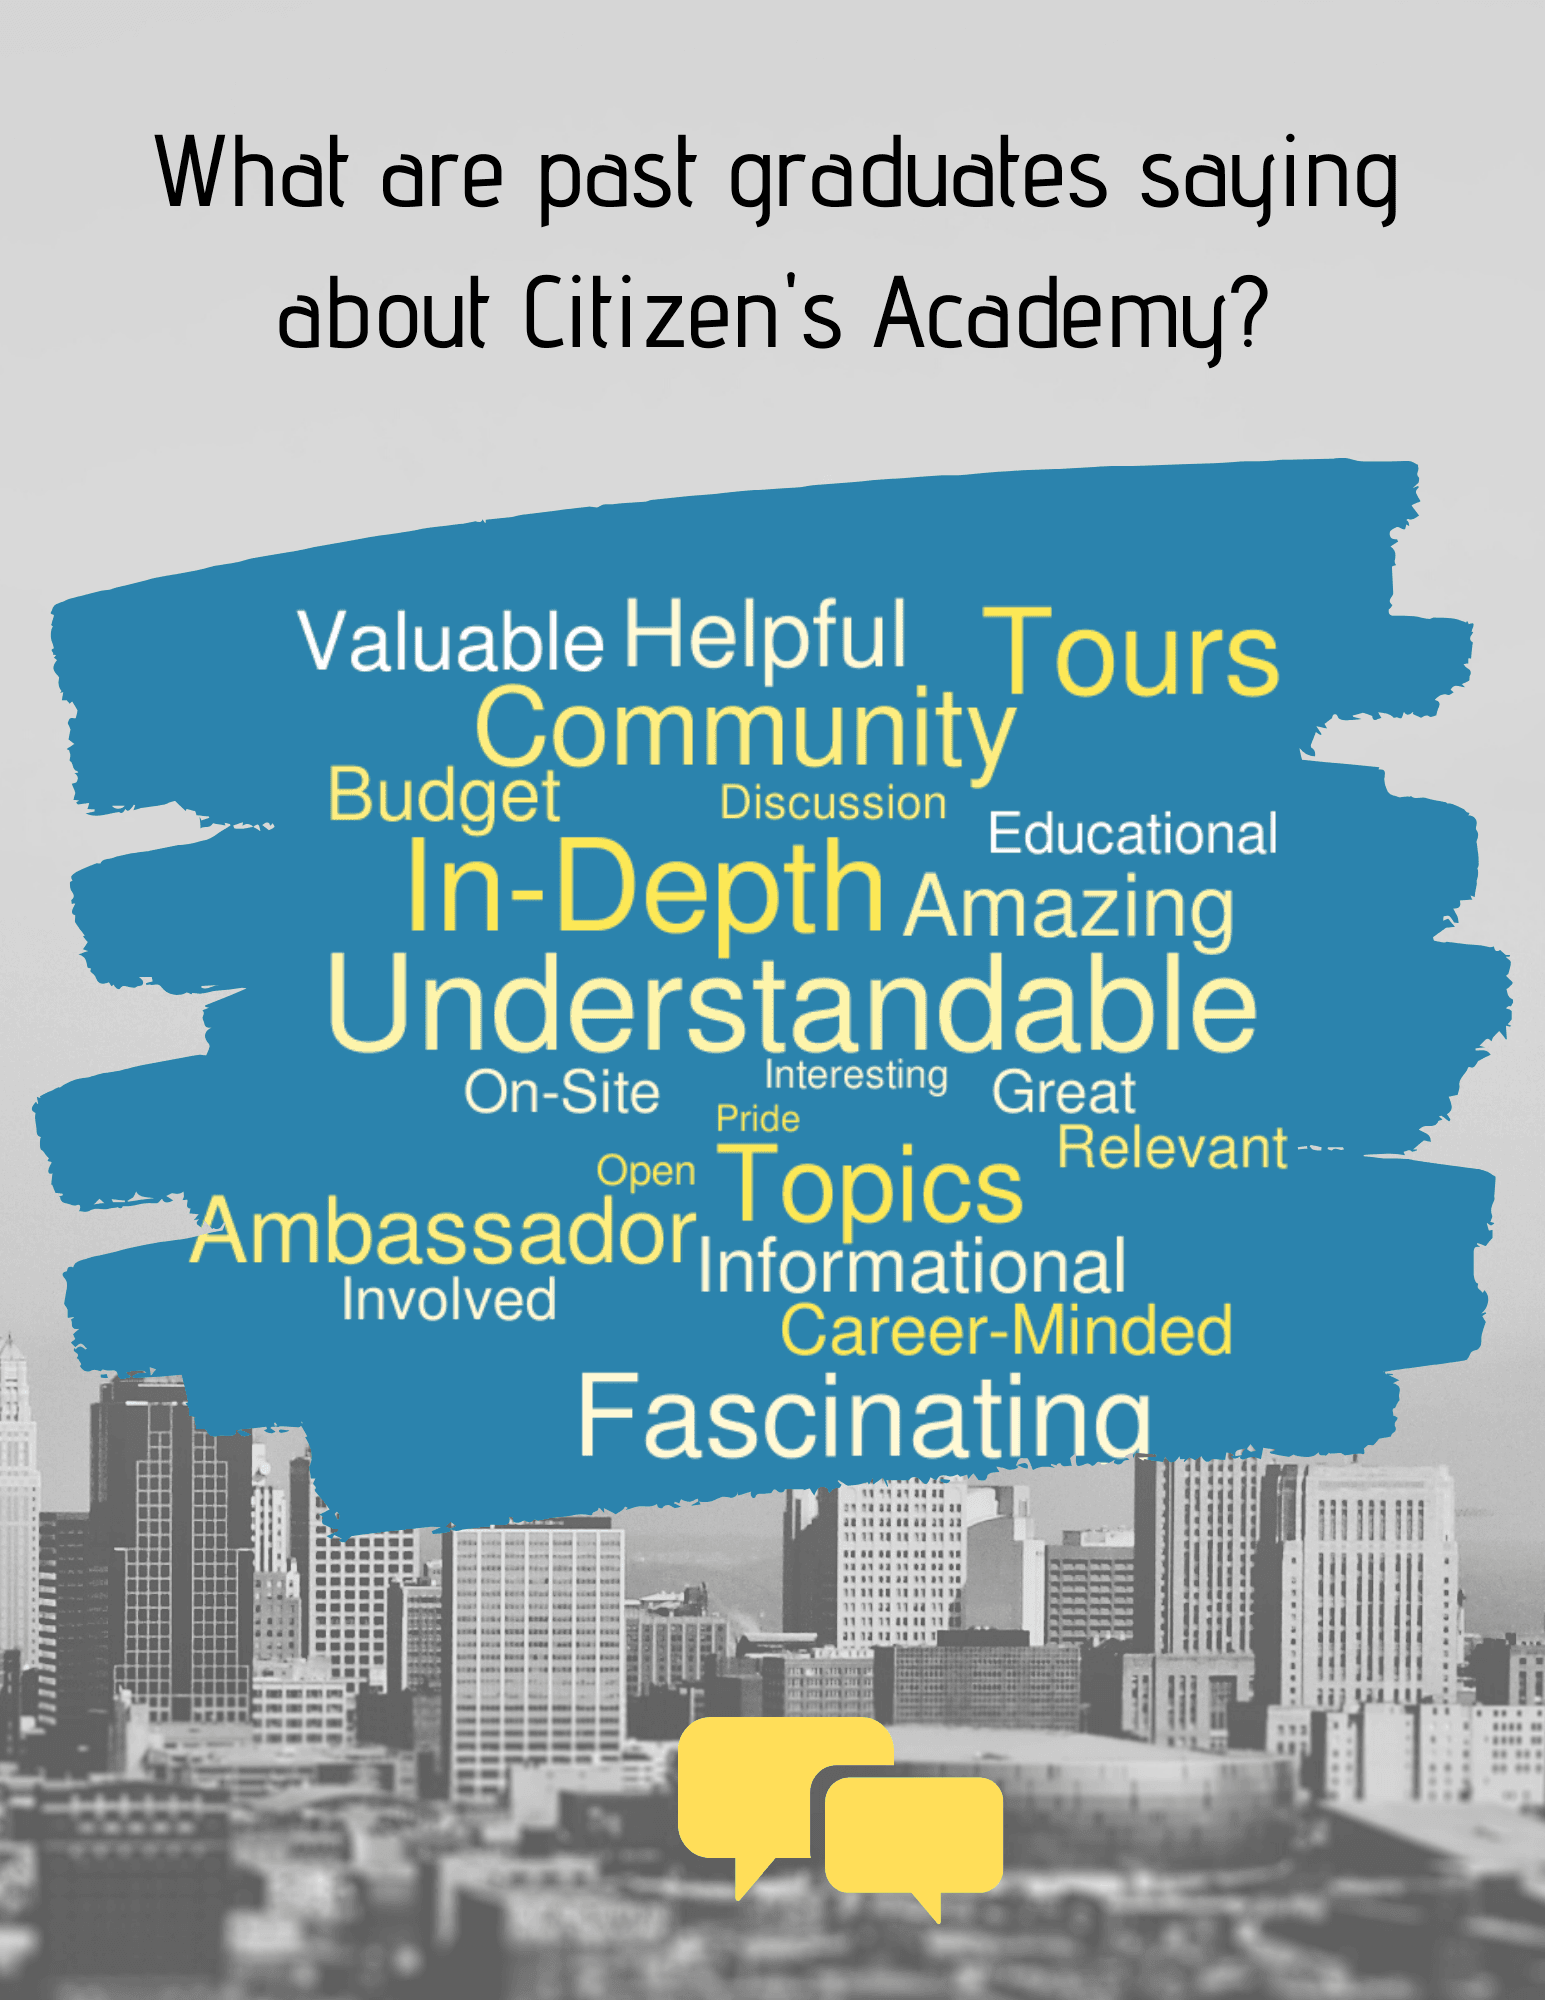 Citizens Academy Word Cloud